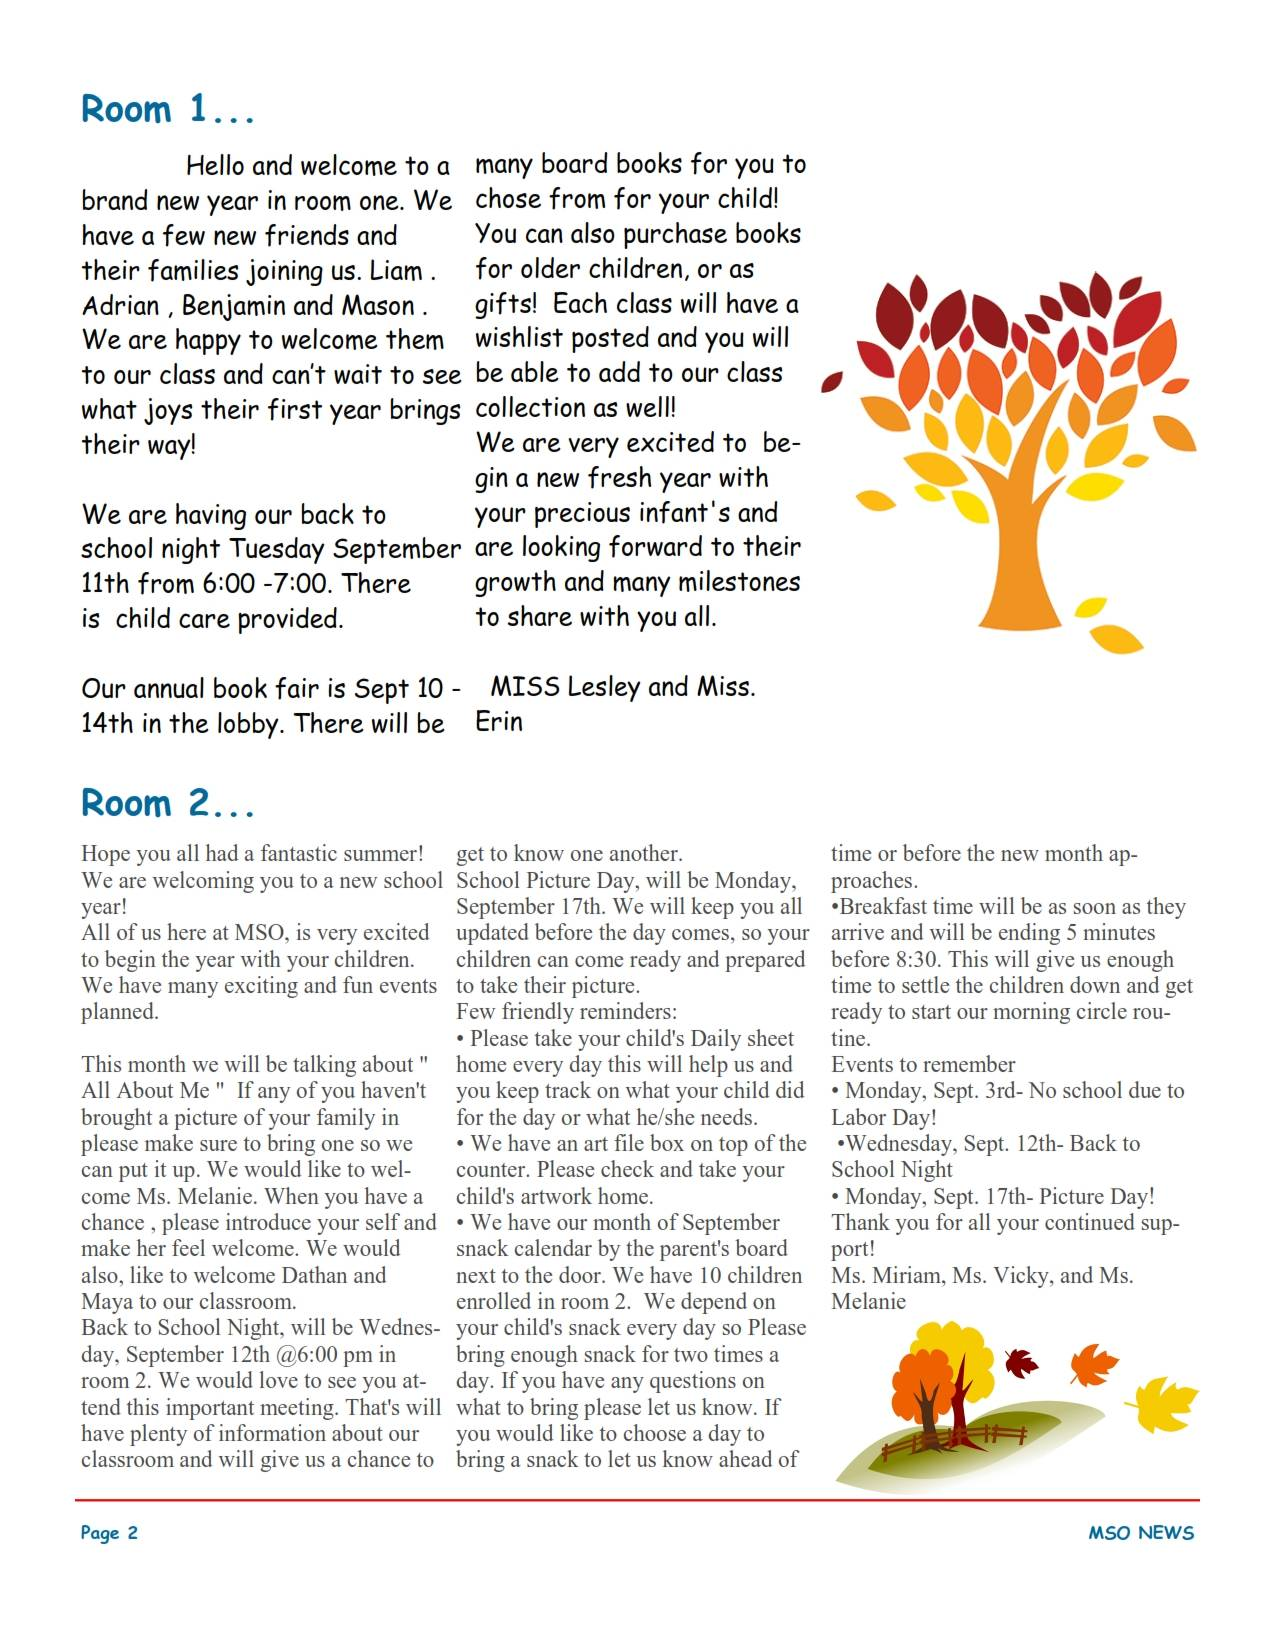 MSO September 2018 Newsletter. Room 1 and Room 2